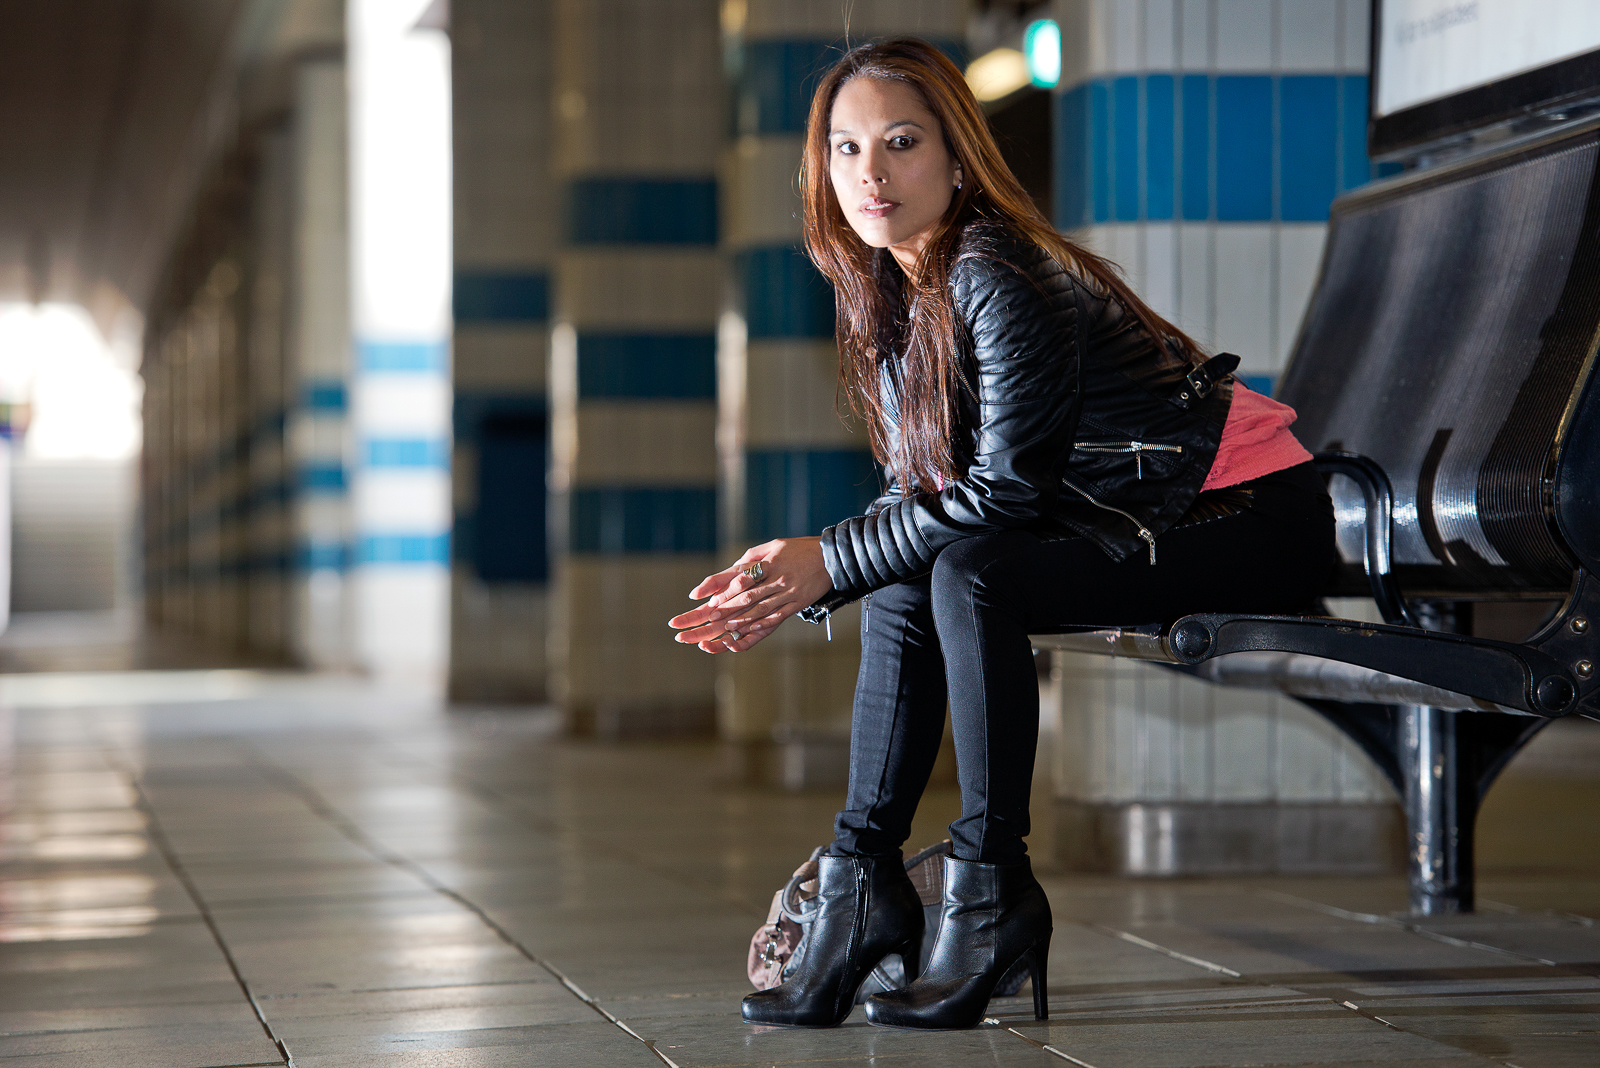 Young woman, sitting on a bench in an underground train station on the platform, wearing high heels, waiting patientely on her train to arrive